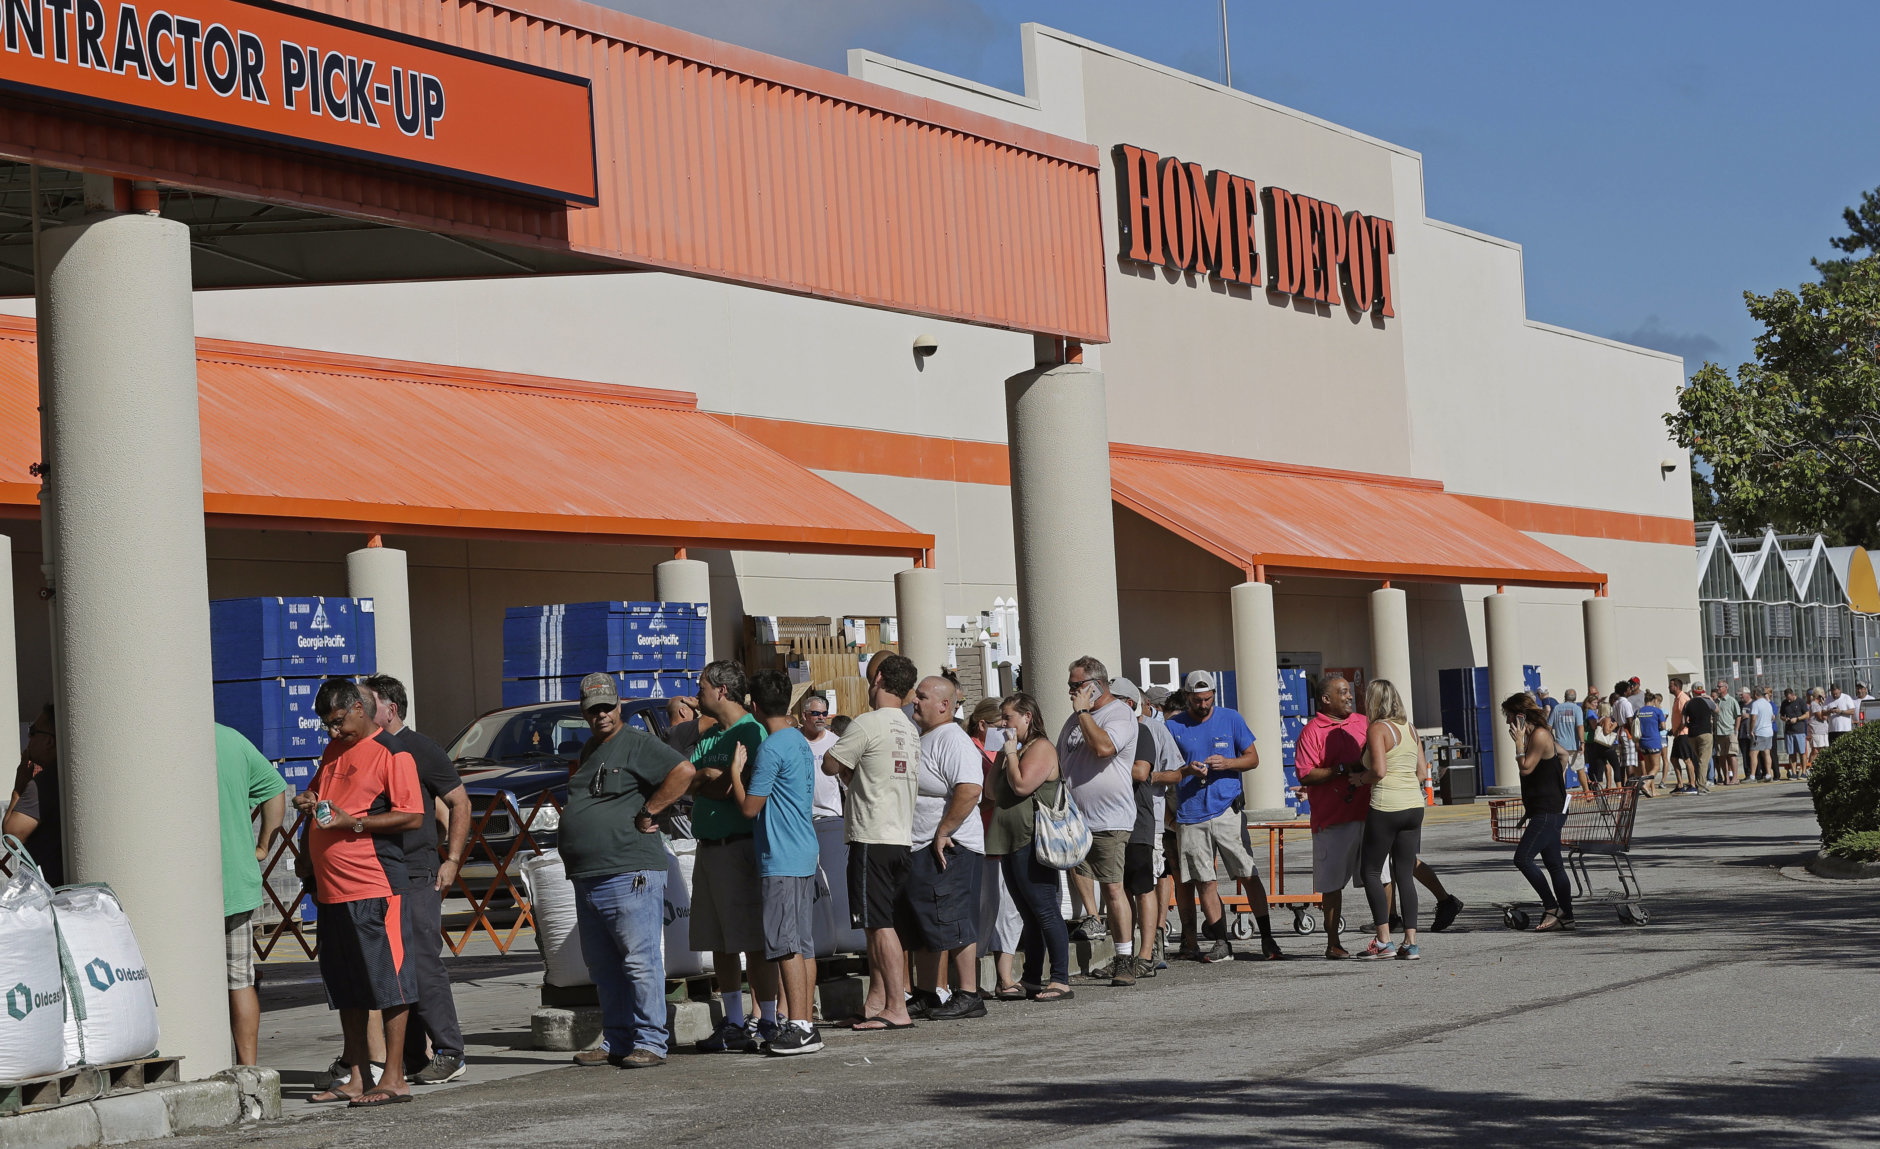 People line up outside a Home Depot for a new supply of generators and plywood in advance of Hurricane Florence in Wilmington, N.C., Wednesday, Sept. 12, 2018. Florence exploded into a potentially catastrophic hurricane Monday as it closed in on North and South Carolina, carrying winds up to 140 mph (220 kph) and water that could wreak havoc over a wide stretch of the eastern United States later this week. (AP Photo/Chuck Burton)